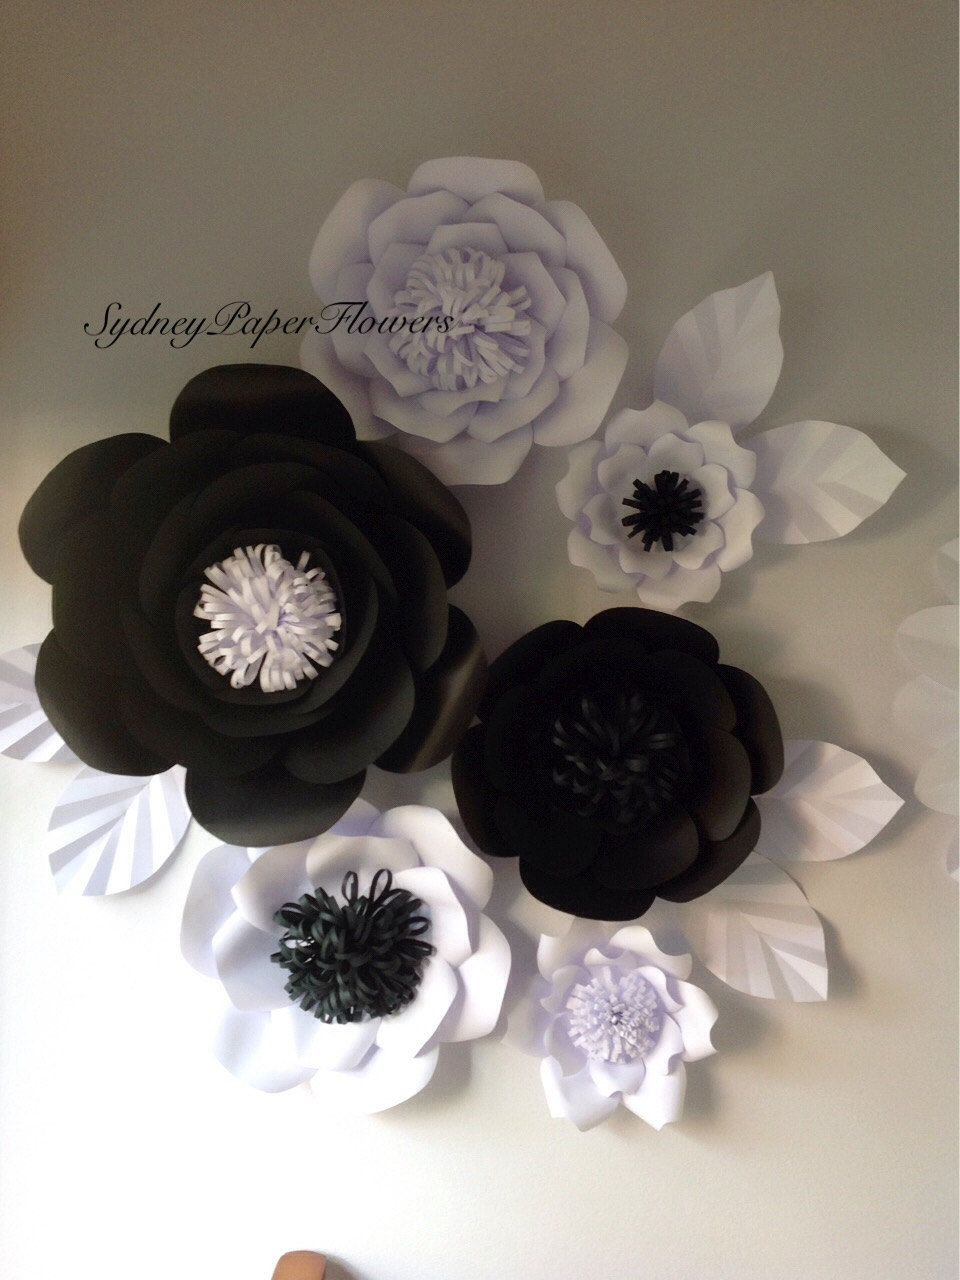 Blanco y negro pared de flores de papel por sydneypaperflowers fiesta 40 39 s karen sobres de - Papel de pared blanco y negro ...